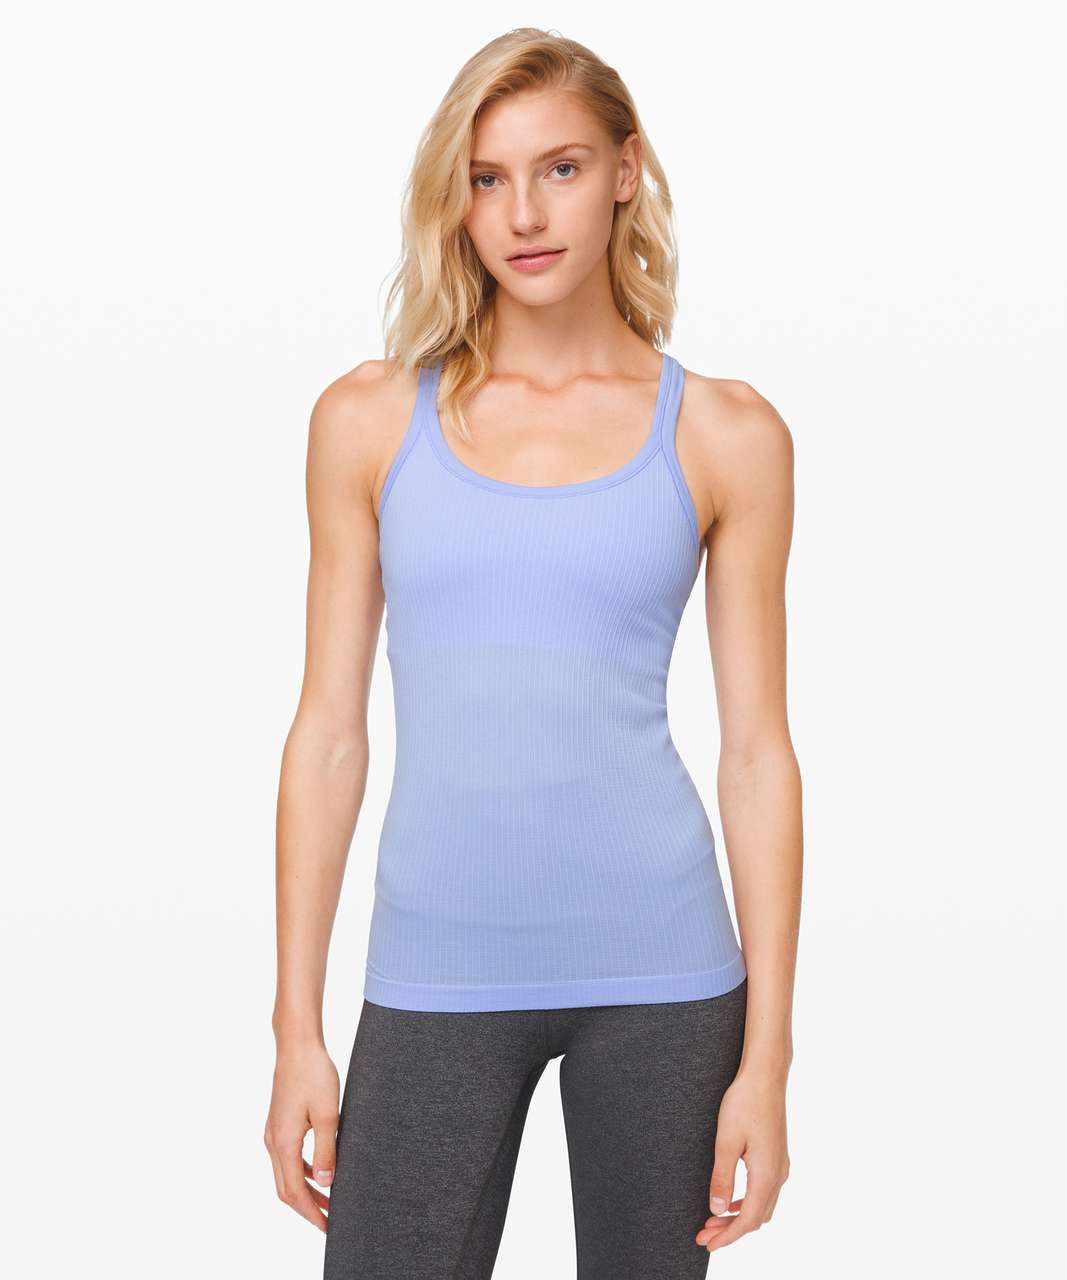 Lululemon Ebb To Street Tank *Light Support For B/C Cup - Lavender Dusk